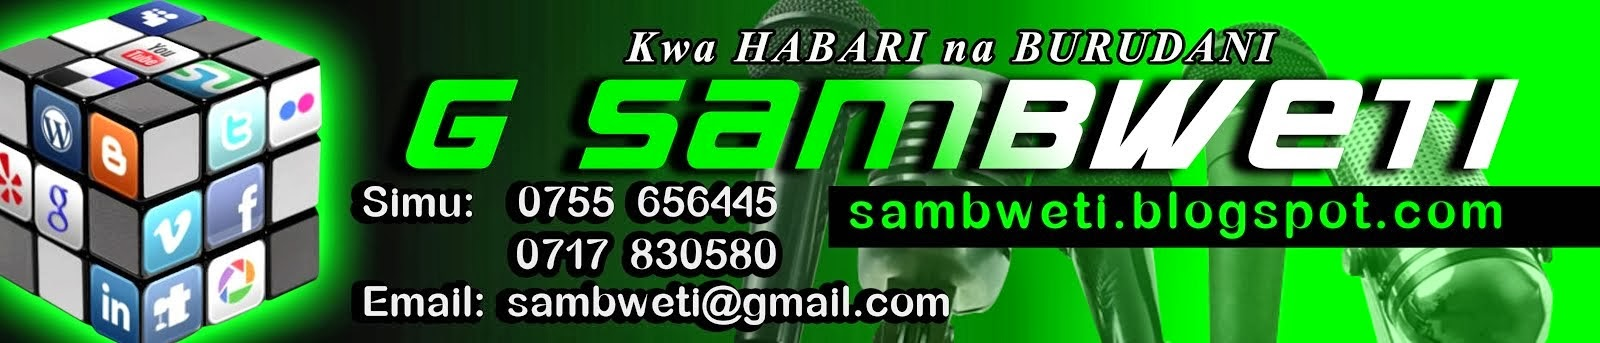 G SAMBWETI official blog